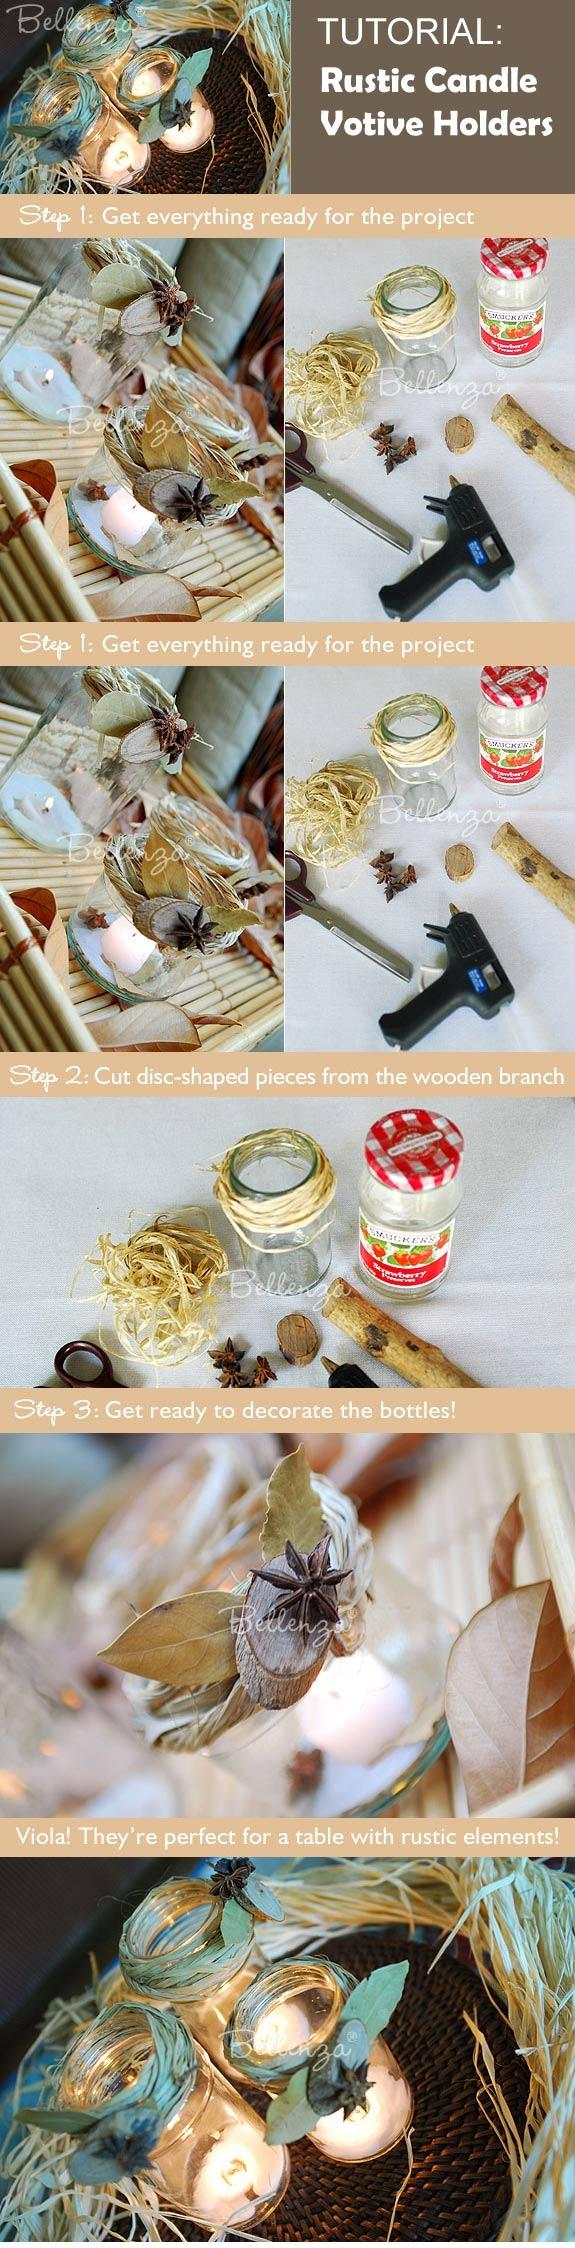 Свадьба - A Candle Votive Project For A Rustic-Inspired Wedding